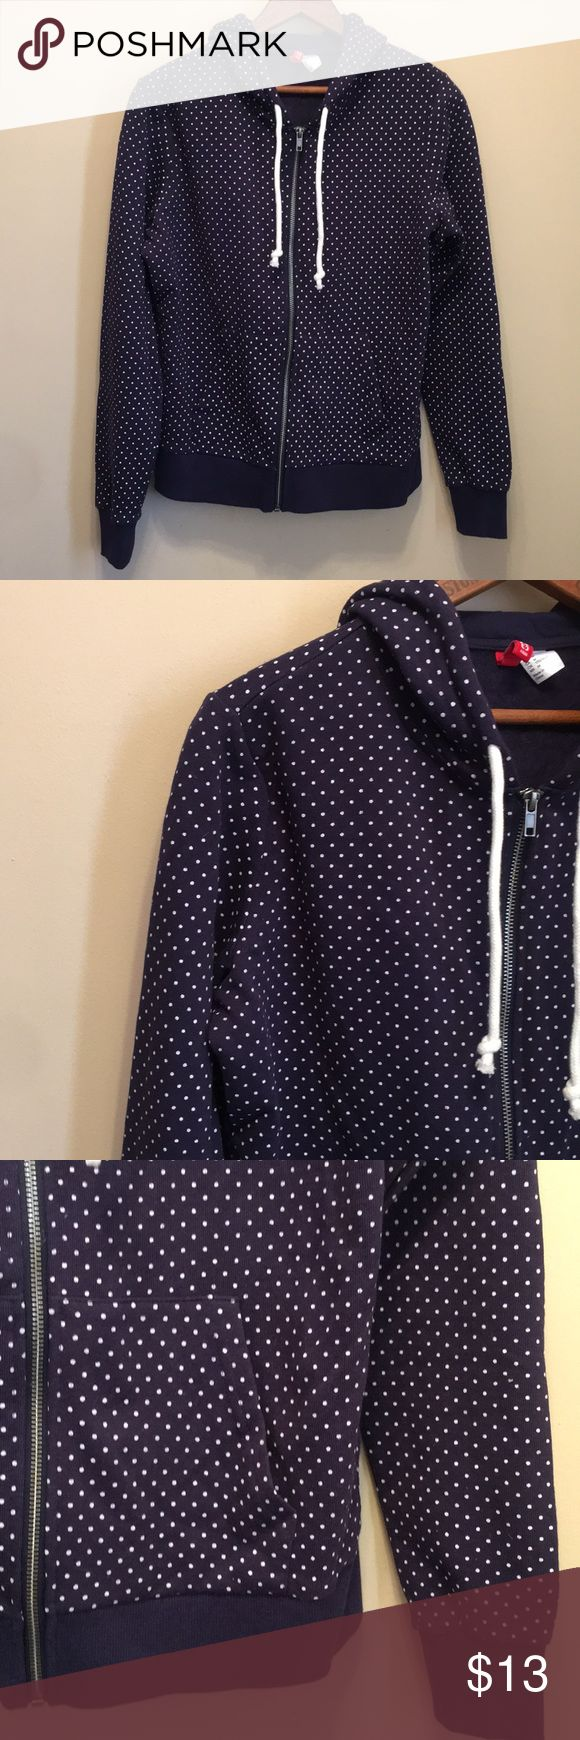 DIVIDED H&M Women's polka dot Zip Up Hoodie Divided H&M Women's Zip Up hooded long sleeve sweatshirt Navy blue with white polka dots Size medium In very good used condition only wore once or twice Divided Tops Sweatshirts & Hoodies